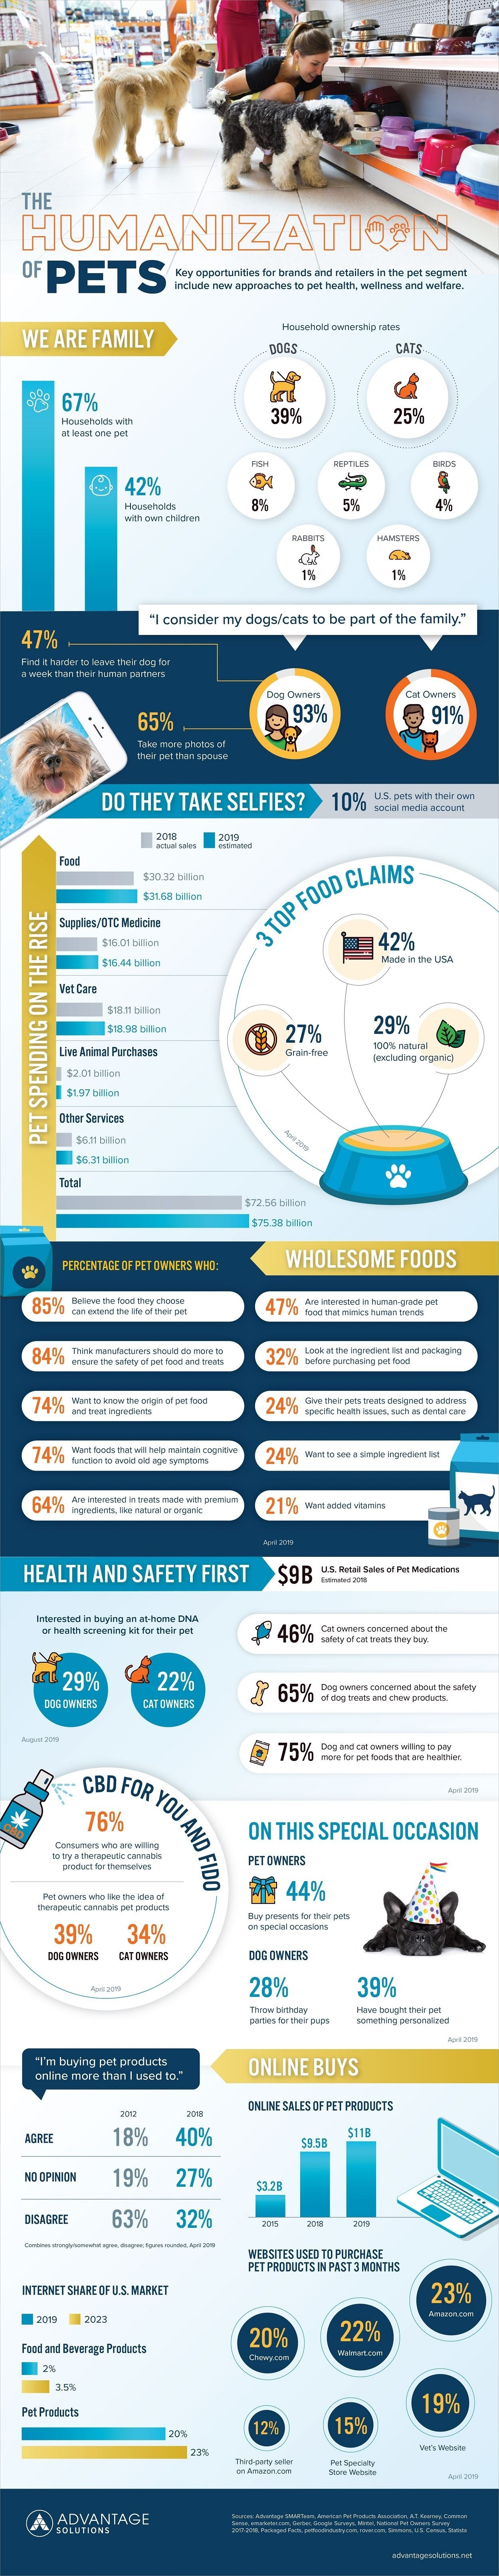 The Humanization of Pets #infographic